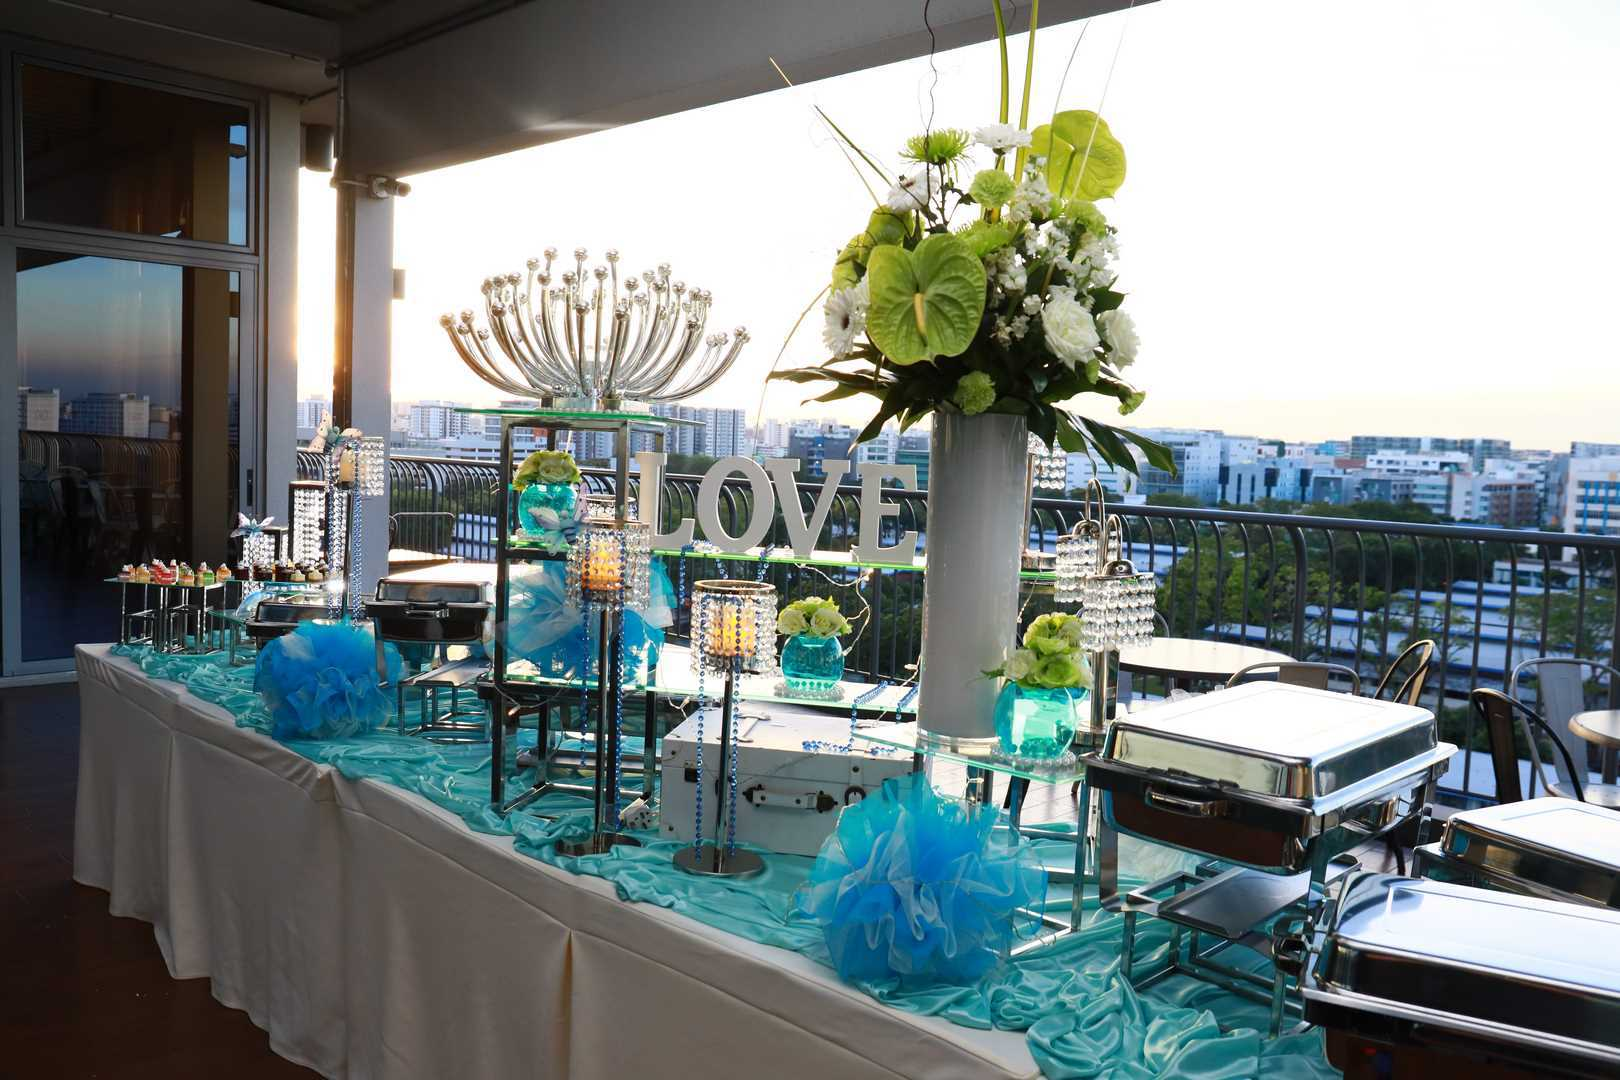 Rasel Catering nautical theme